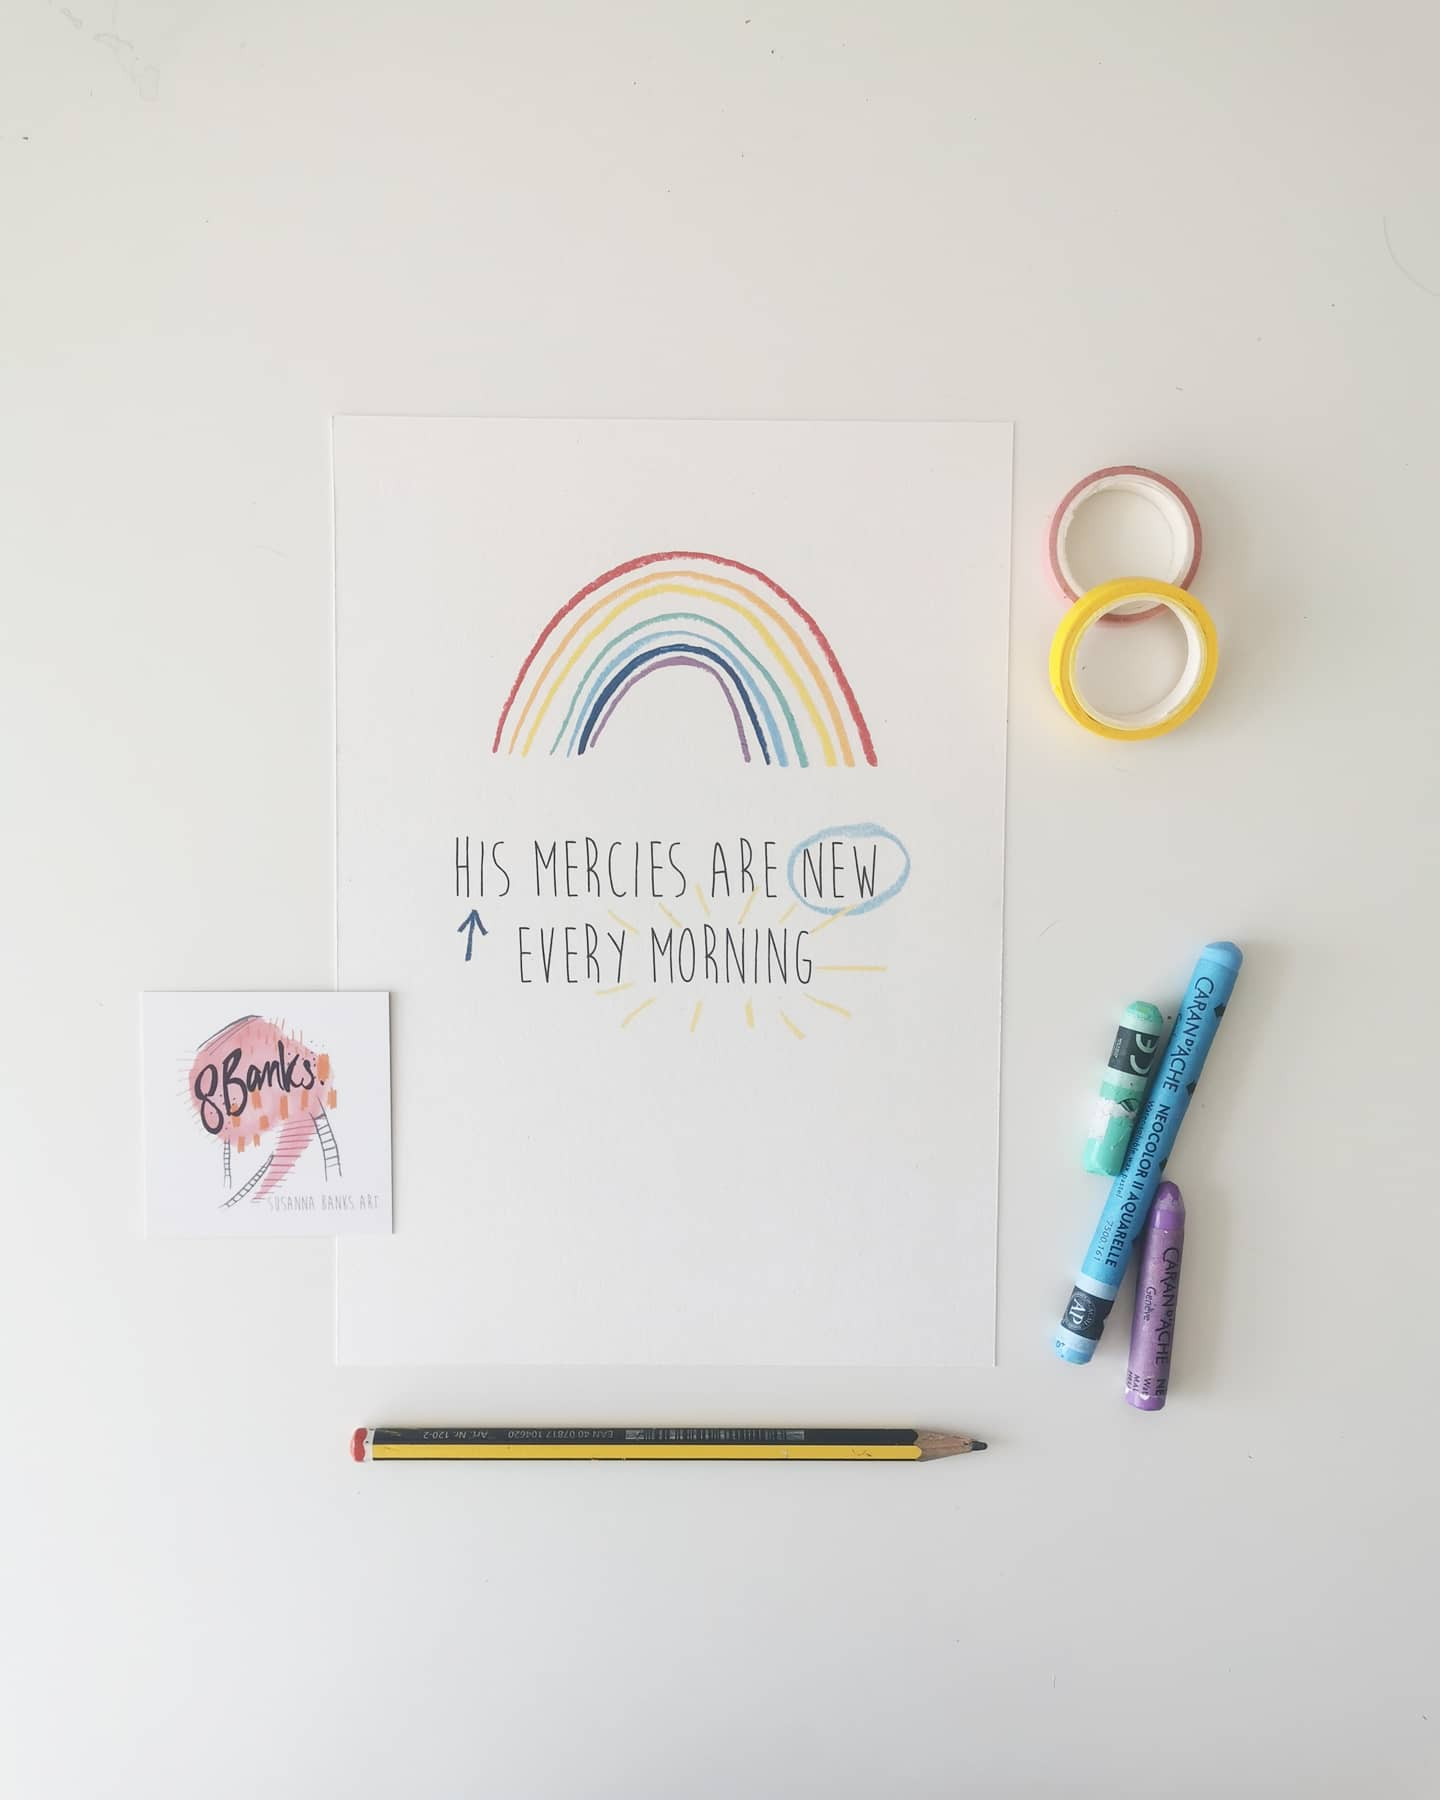 A5 Illustrated Encouragement Rainbow Print -  His Mercies are New Every Morning